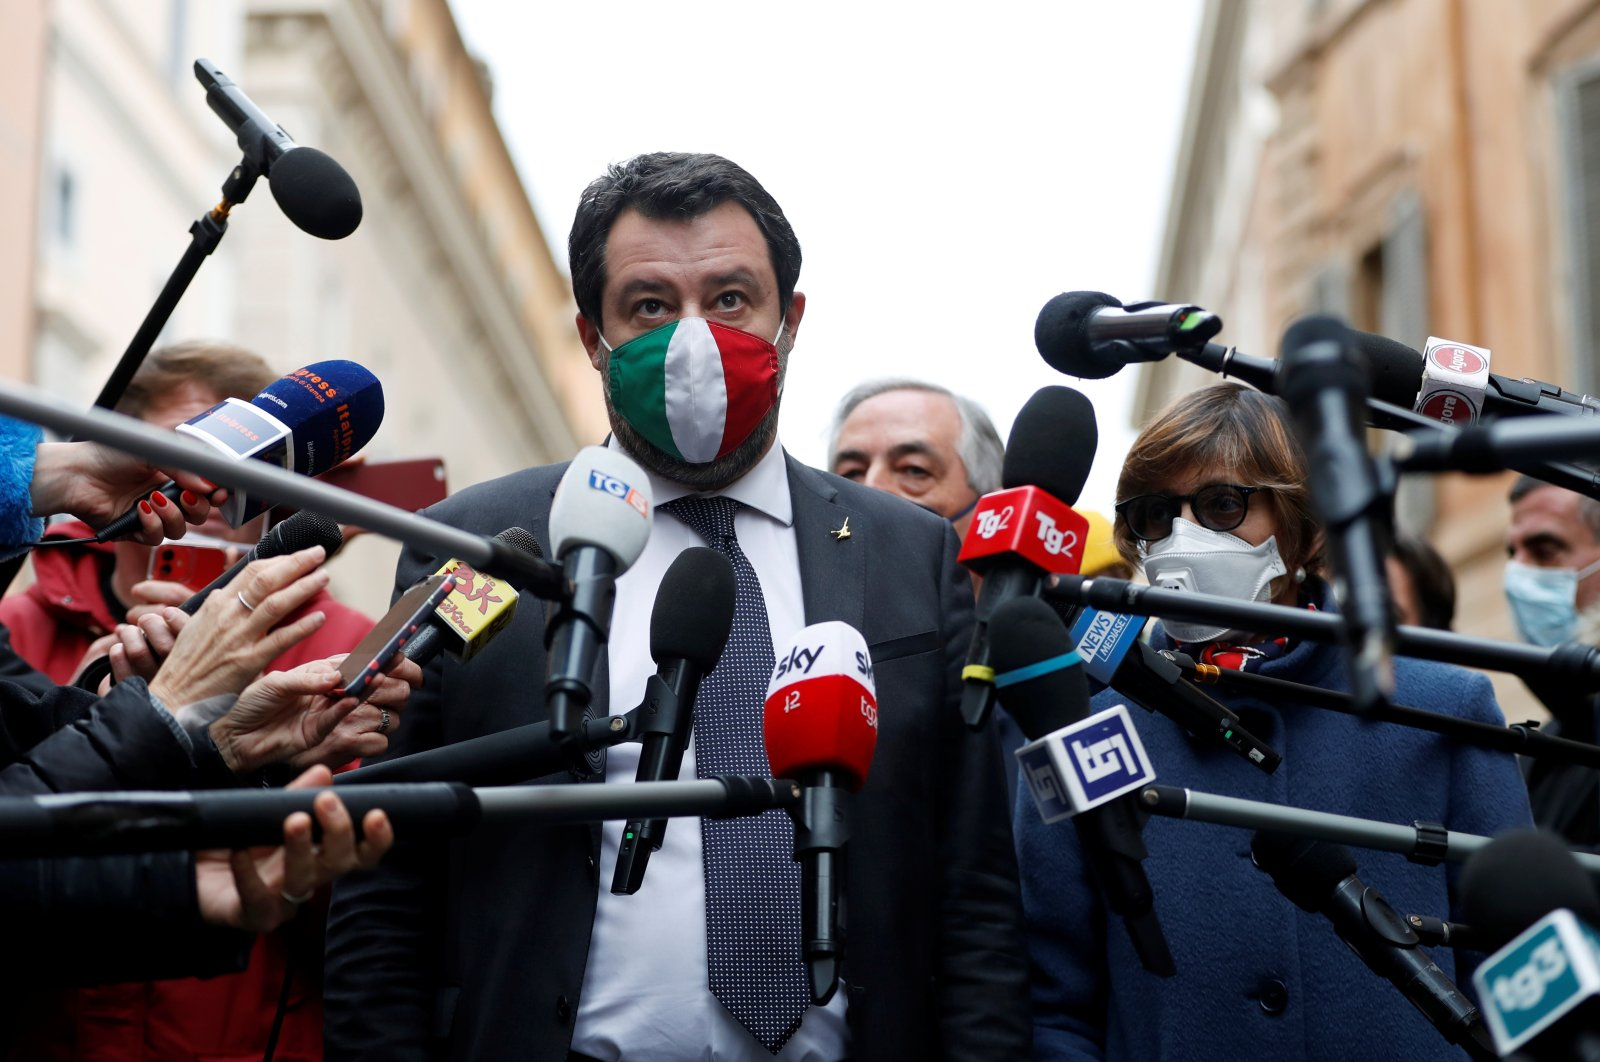 Leader of Italy's far-right League party Matteo Salvini speaks to the media on the second day of consultations between Italy's President Sergio Mattarella and political parties to try and find the basis for a new government, Rome, Italy, Jan. 28, 2021. (Reuters Photo)